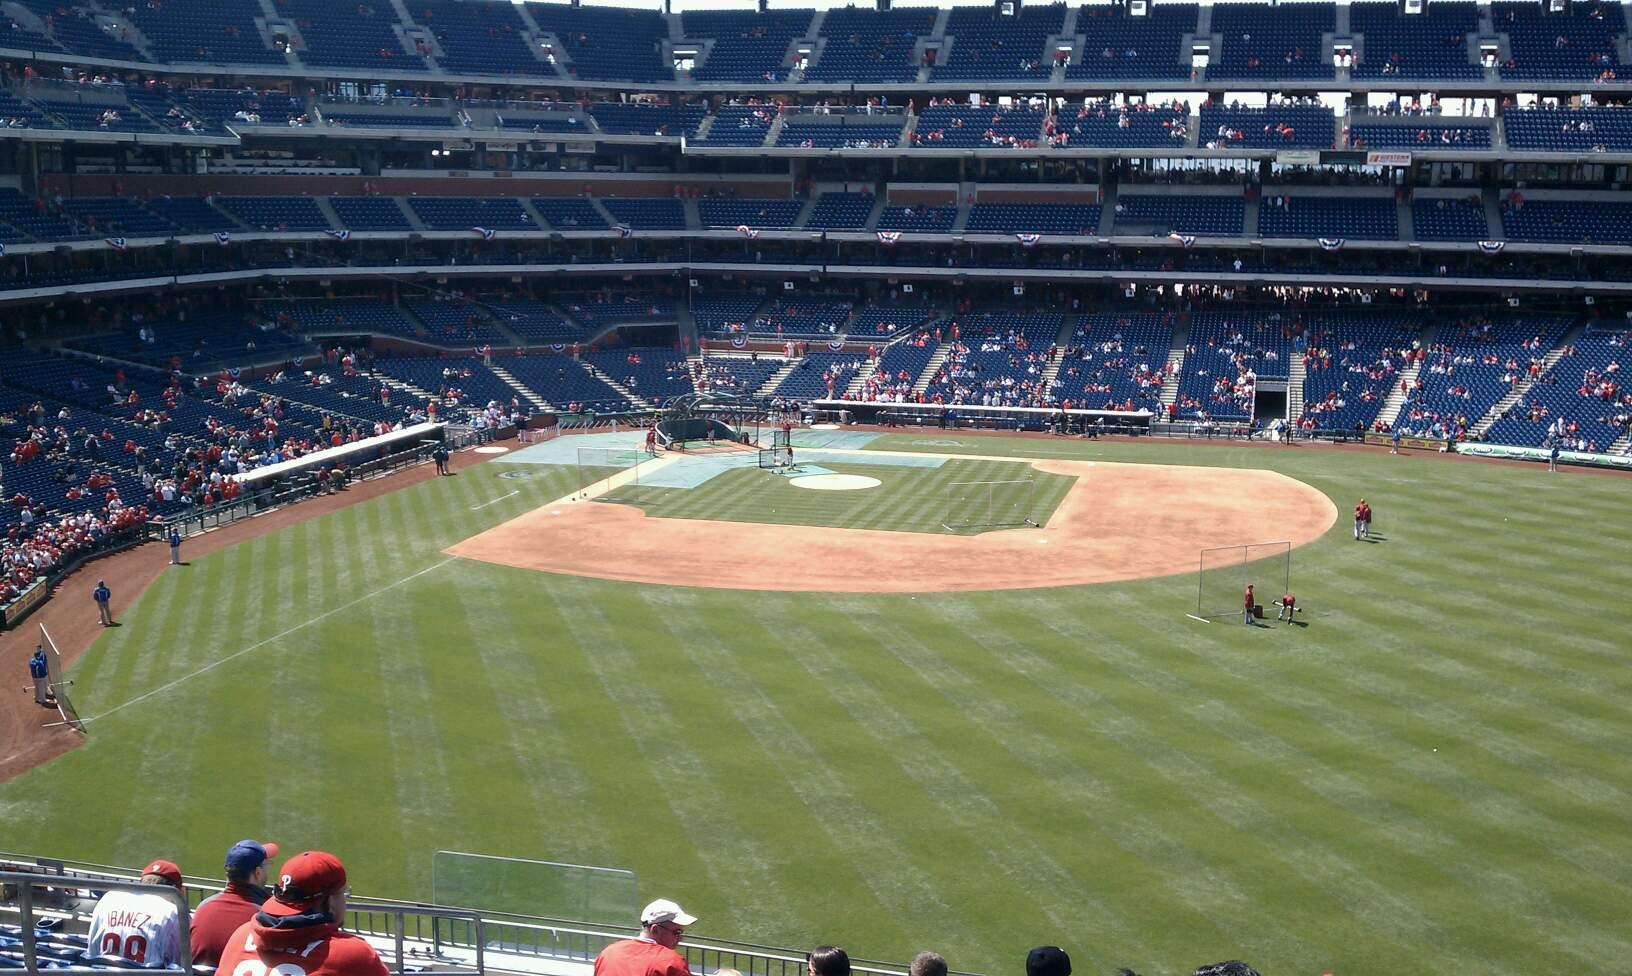 Citizens Bank Park Section 202 Row 11 Seat 18